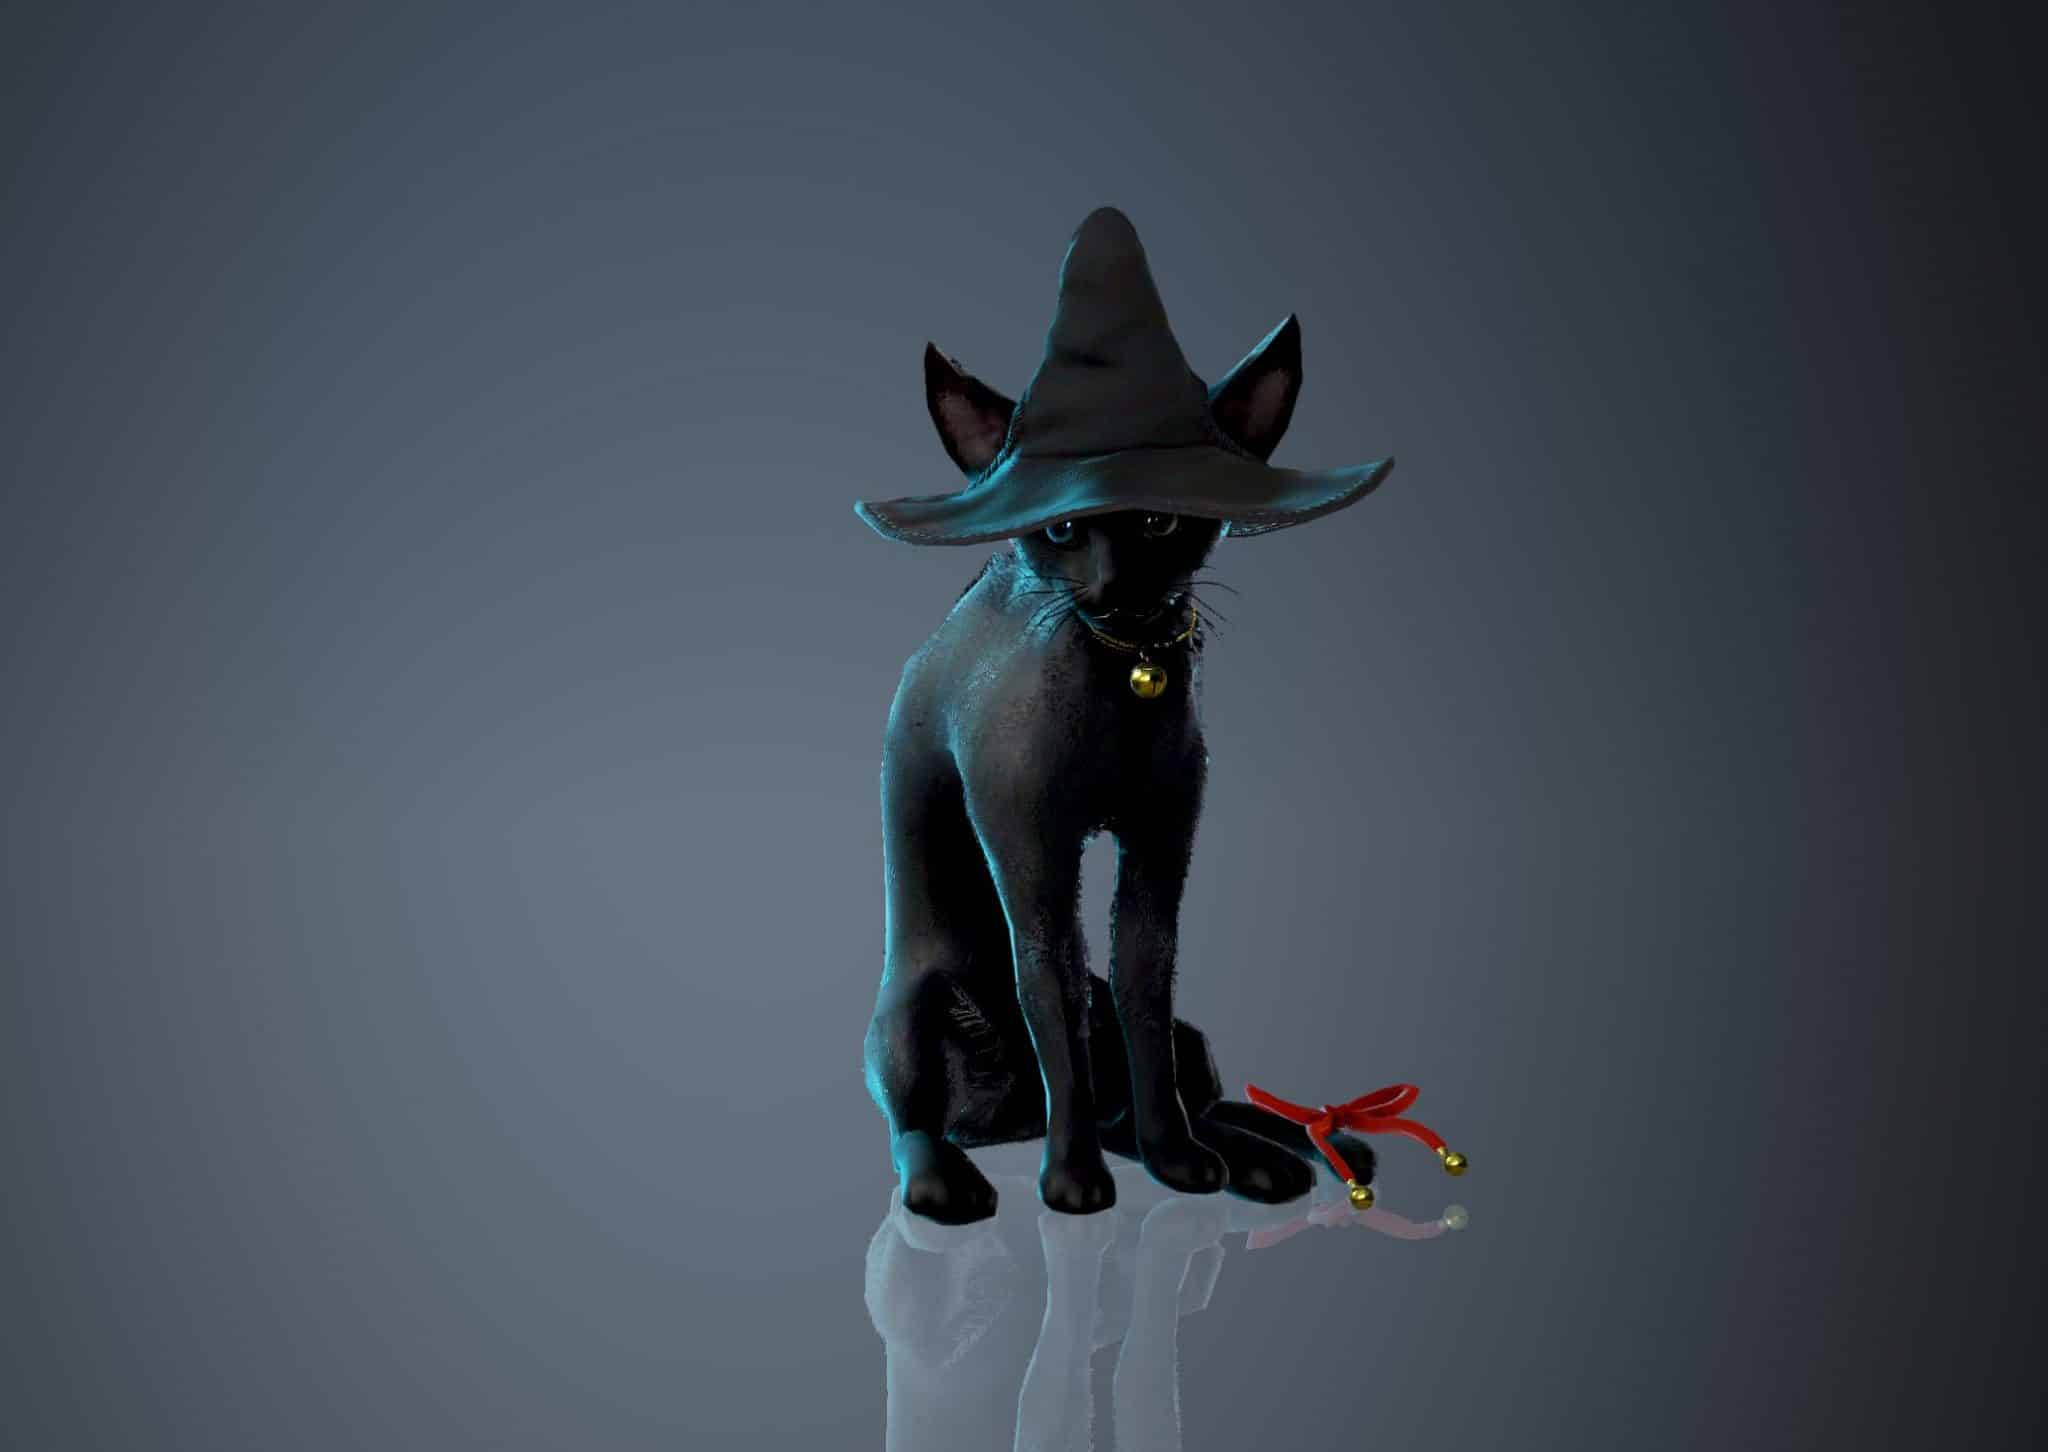 Witch Hat Charlotte Pet, Halloween 2018, Black Desert Online